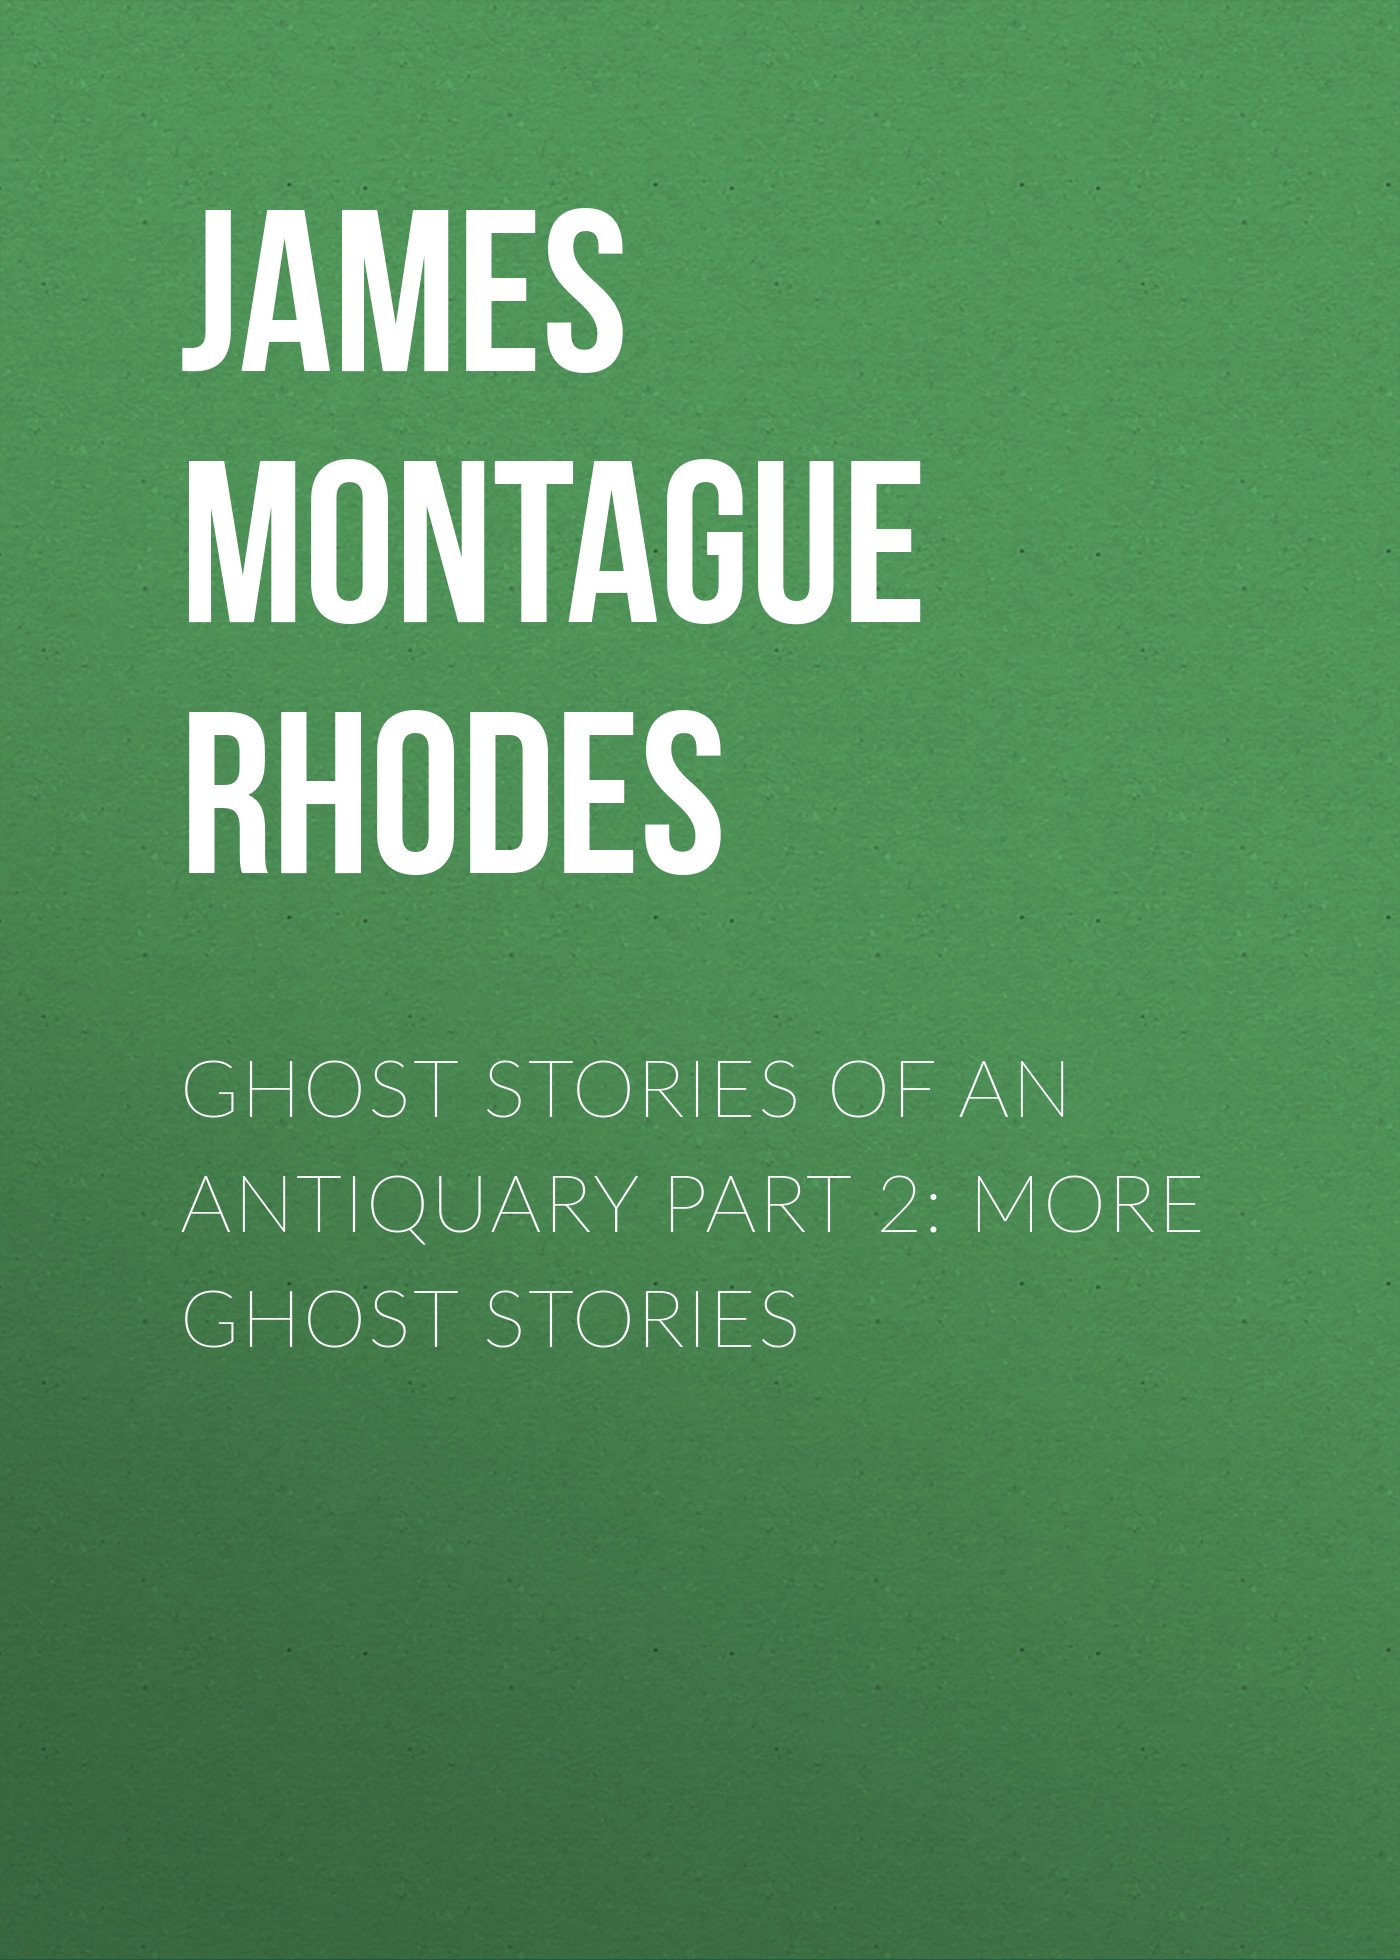 Купить James Montague Rhodes Ghost Stories of an Antiquary Part 2: More Ghost Stories в интернет-магазине дешево